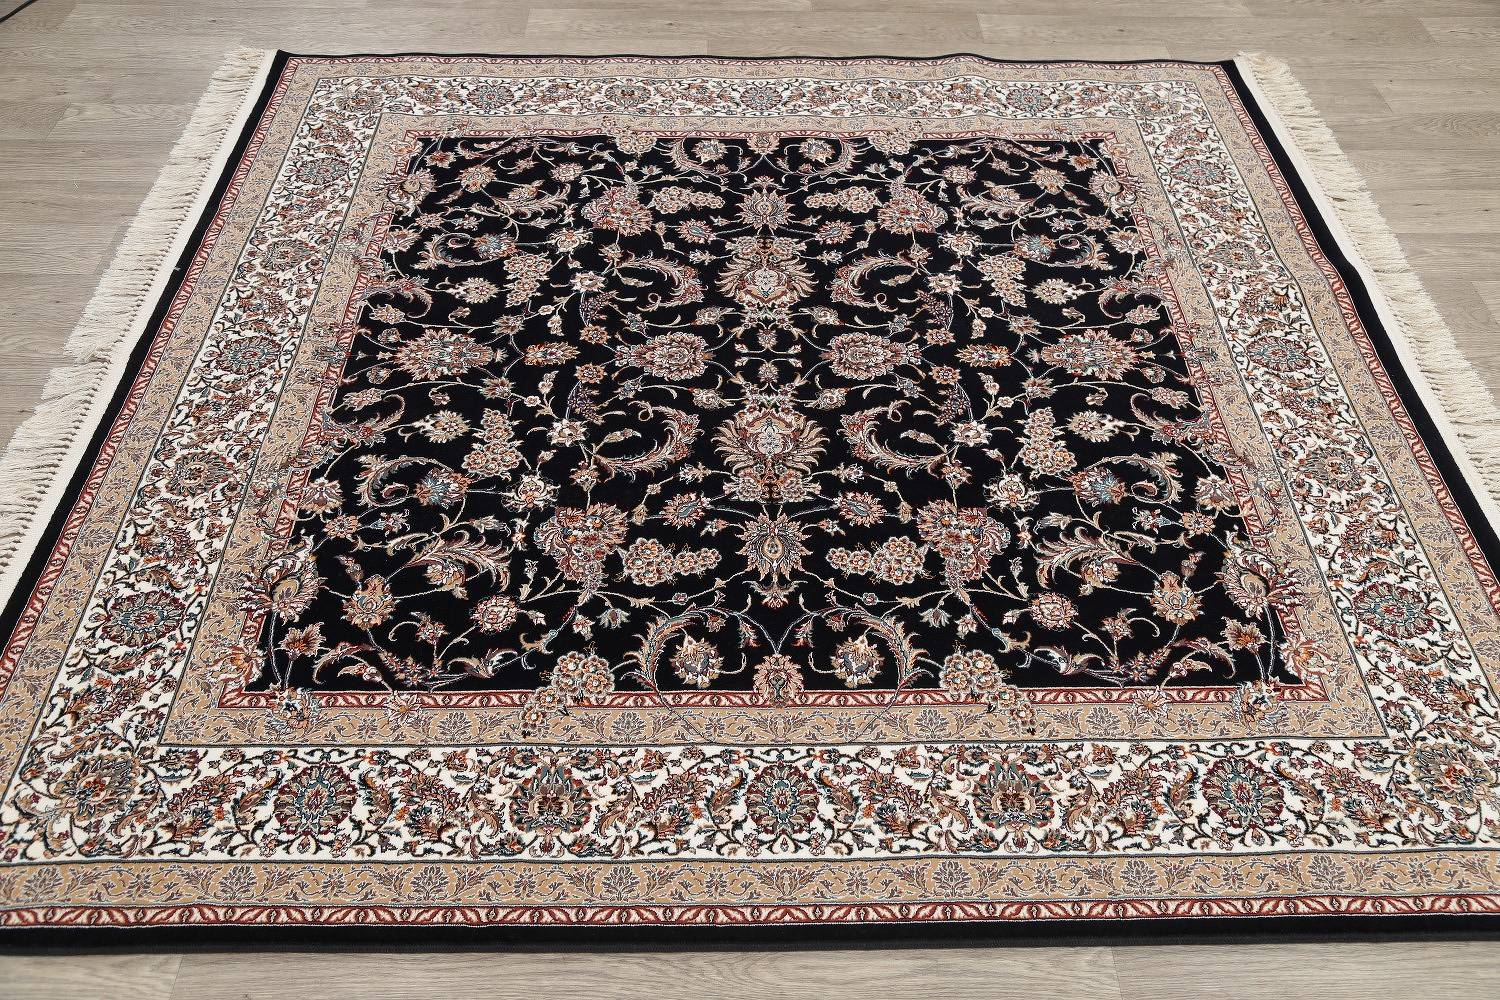 All-Over Black Floral Hereke Turkish Oriental 7x7 Square Area Rug